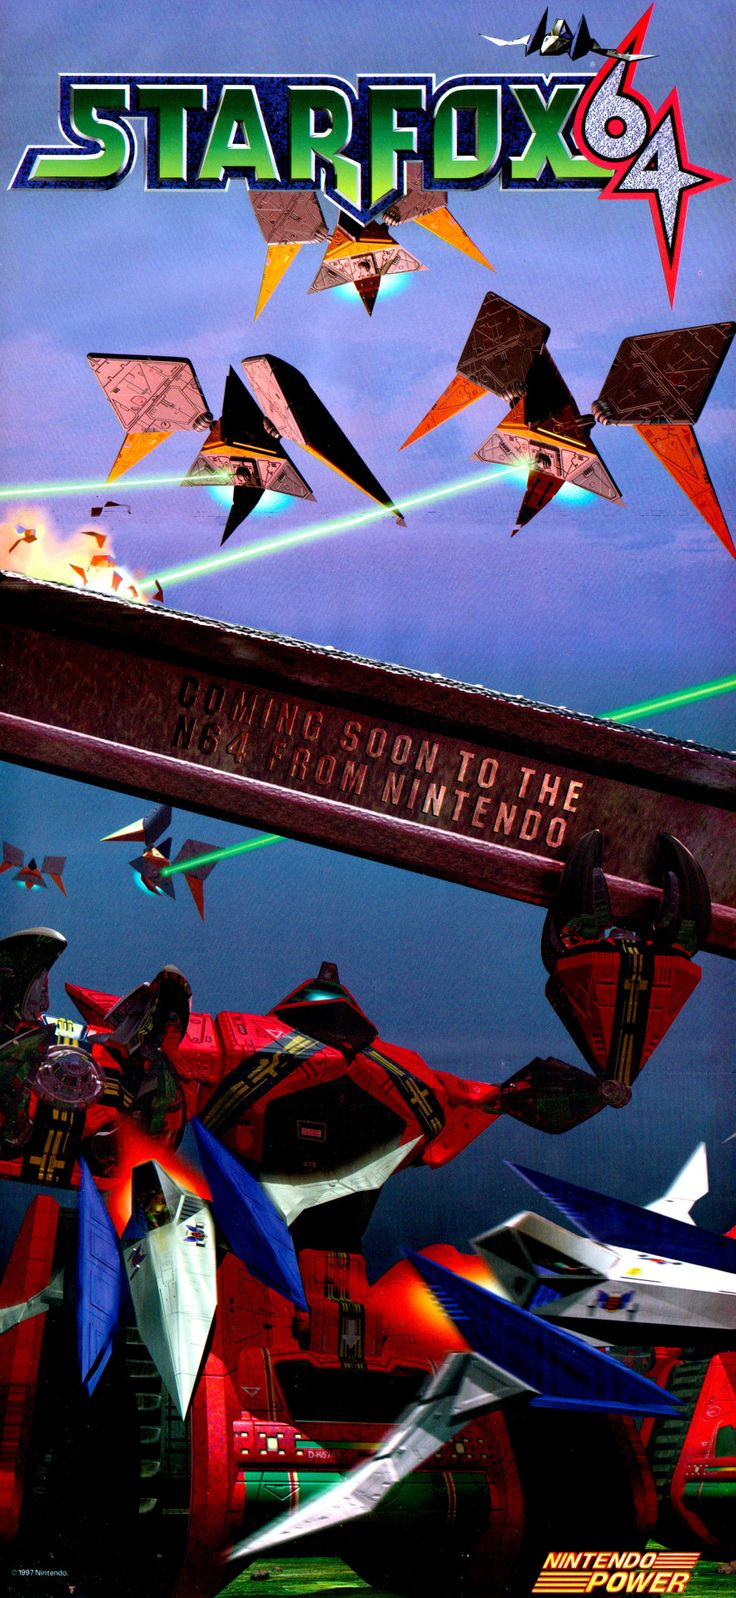 SCAN TIME: Nintendo Power's sensuous Star Fox 64 centerfold.  Star Fox 64 (Nintendo 64)—http://www.megalextoria.com/wordpress/index.php/category/retro-games/nintendo-64/